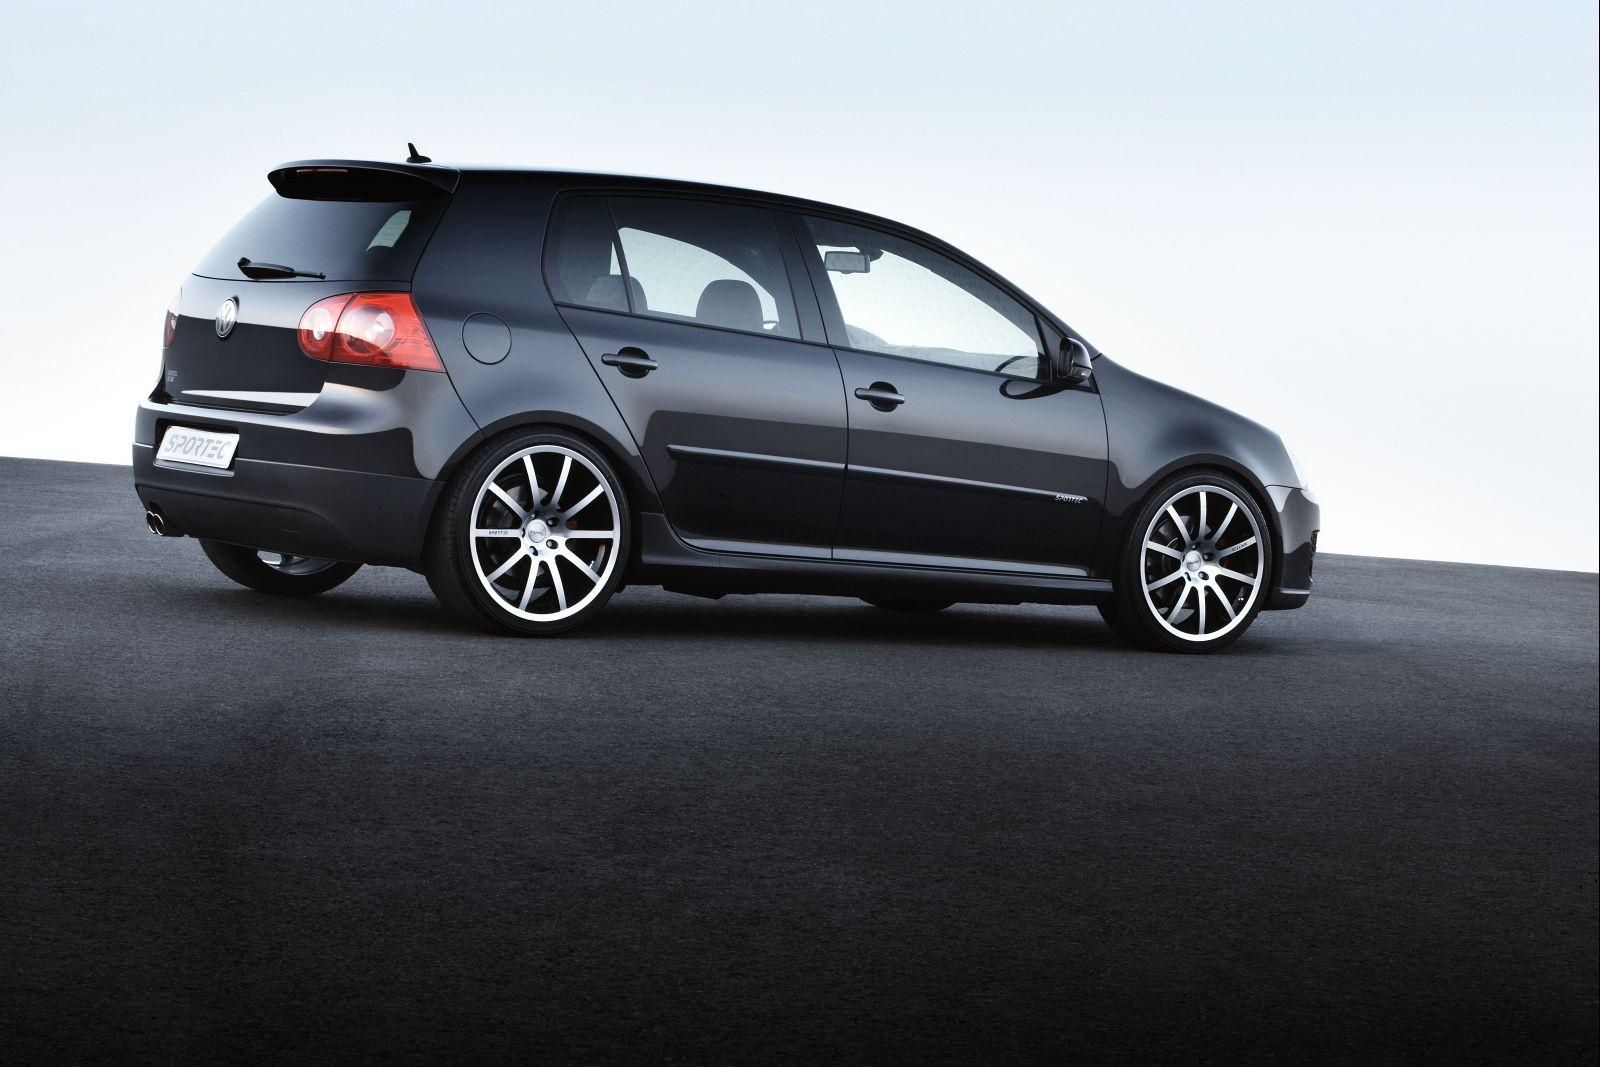 Sportec Vw Golf Gti Rs300 Photos Photogallery With 4